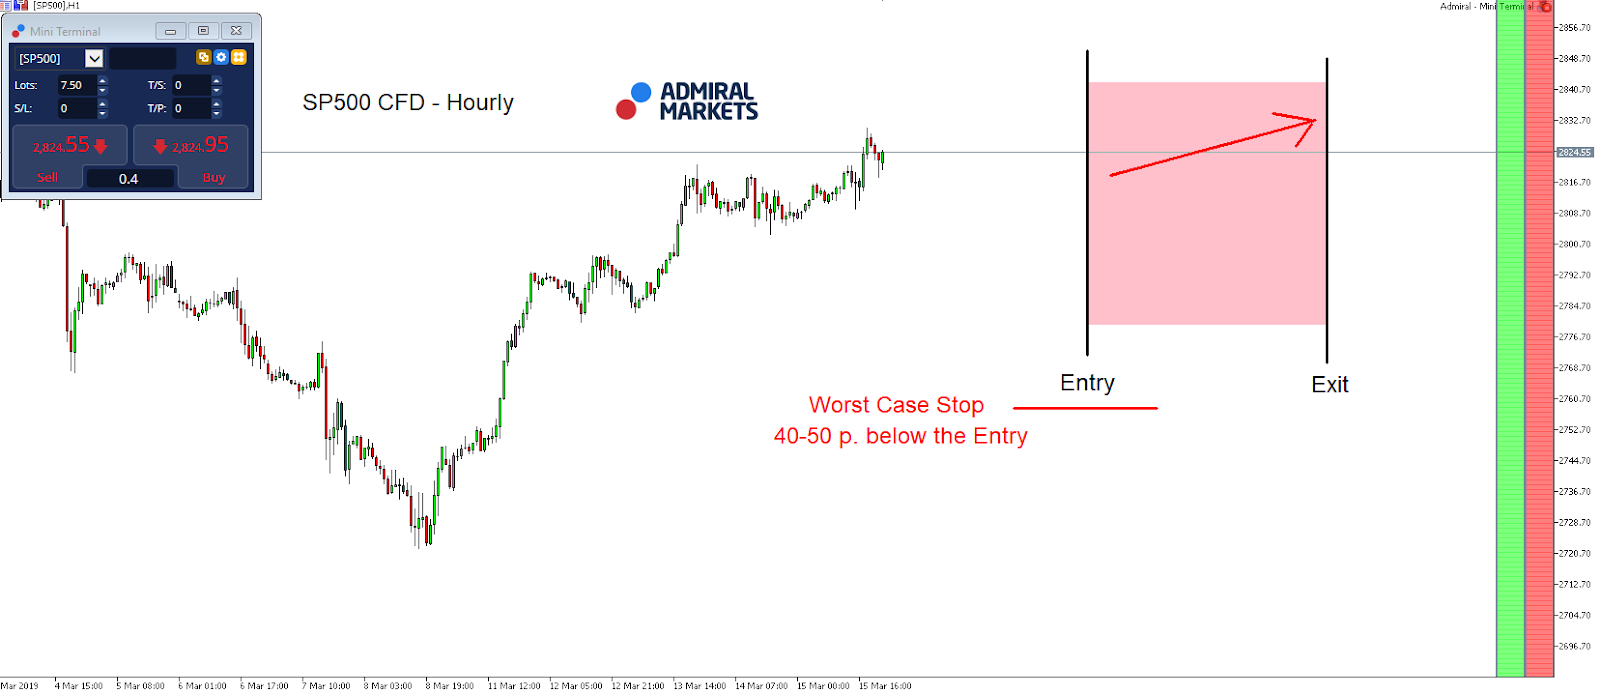 SP500 index hourly chart